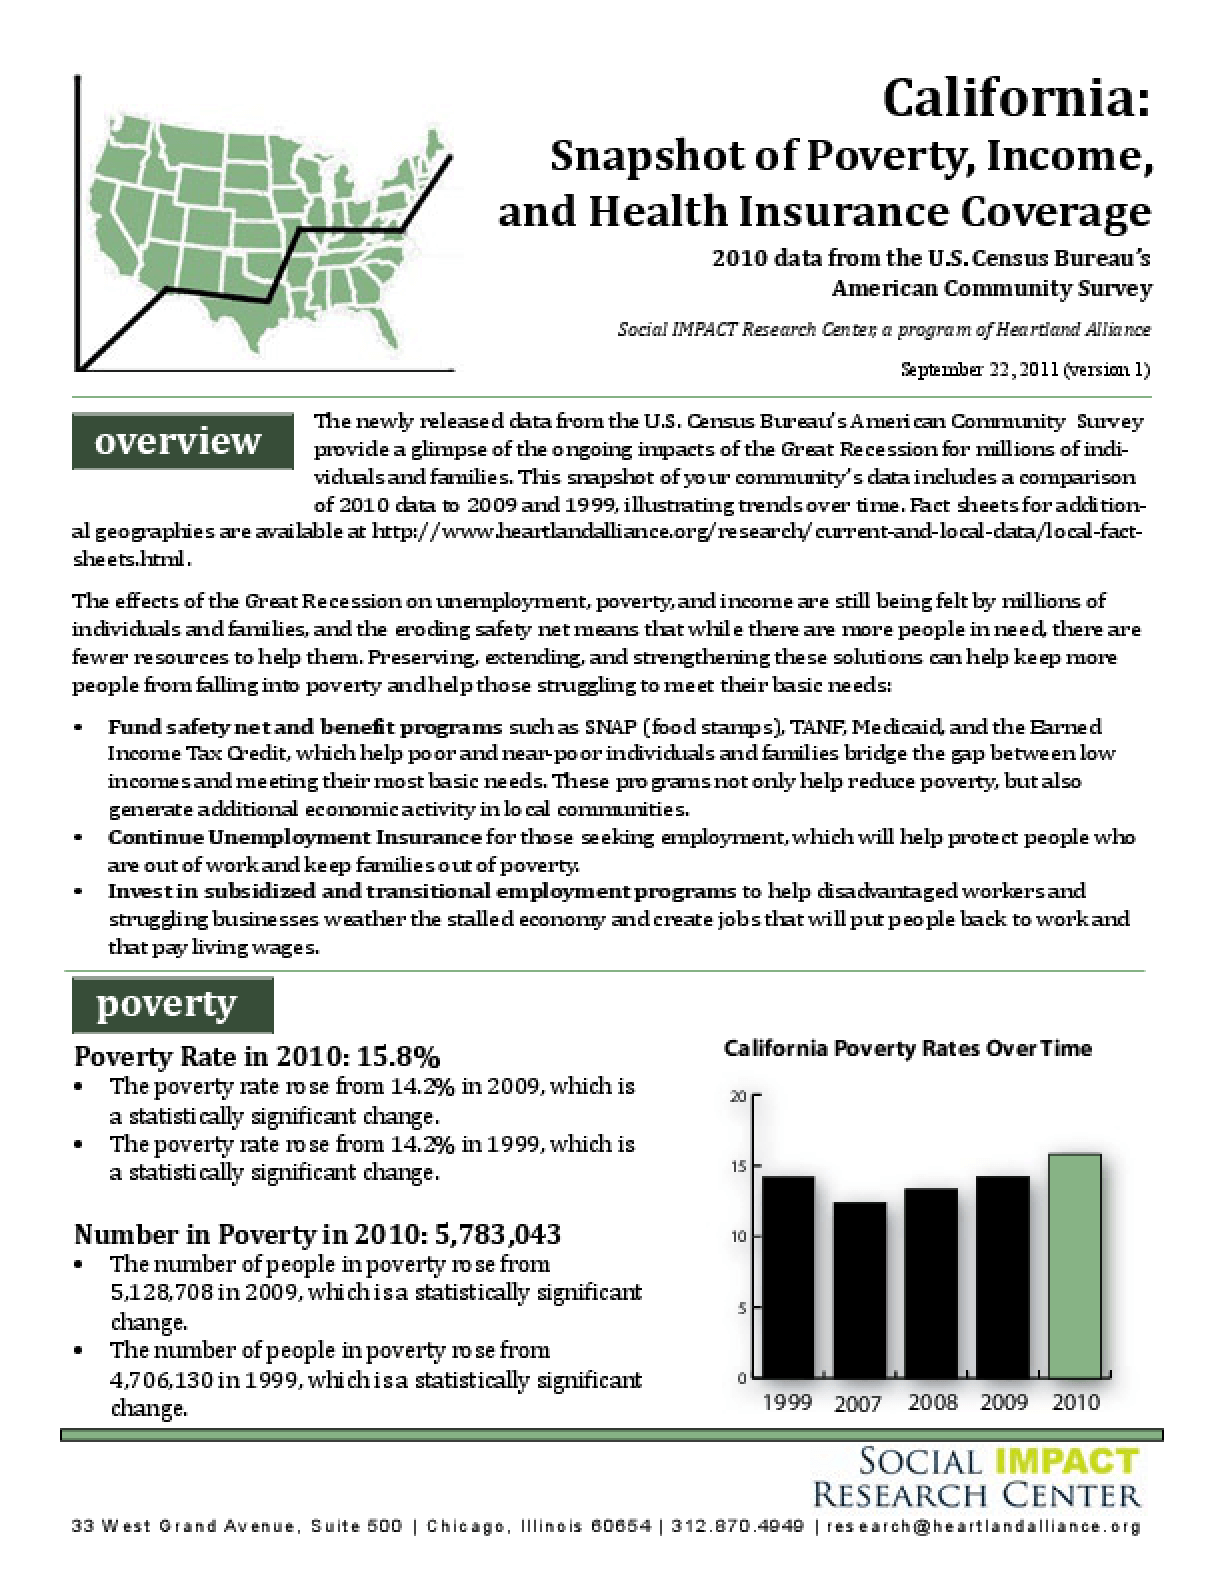 California: Snapshot of Poverty, Income, and Health Insurance Coverage